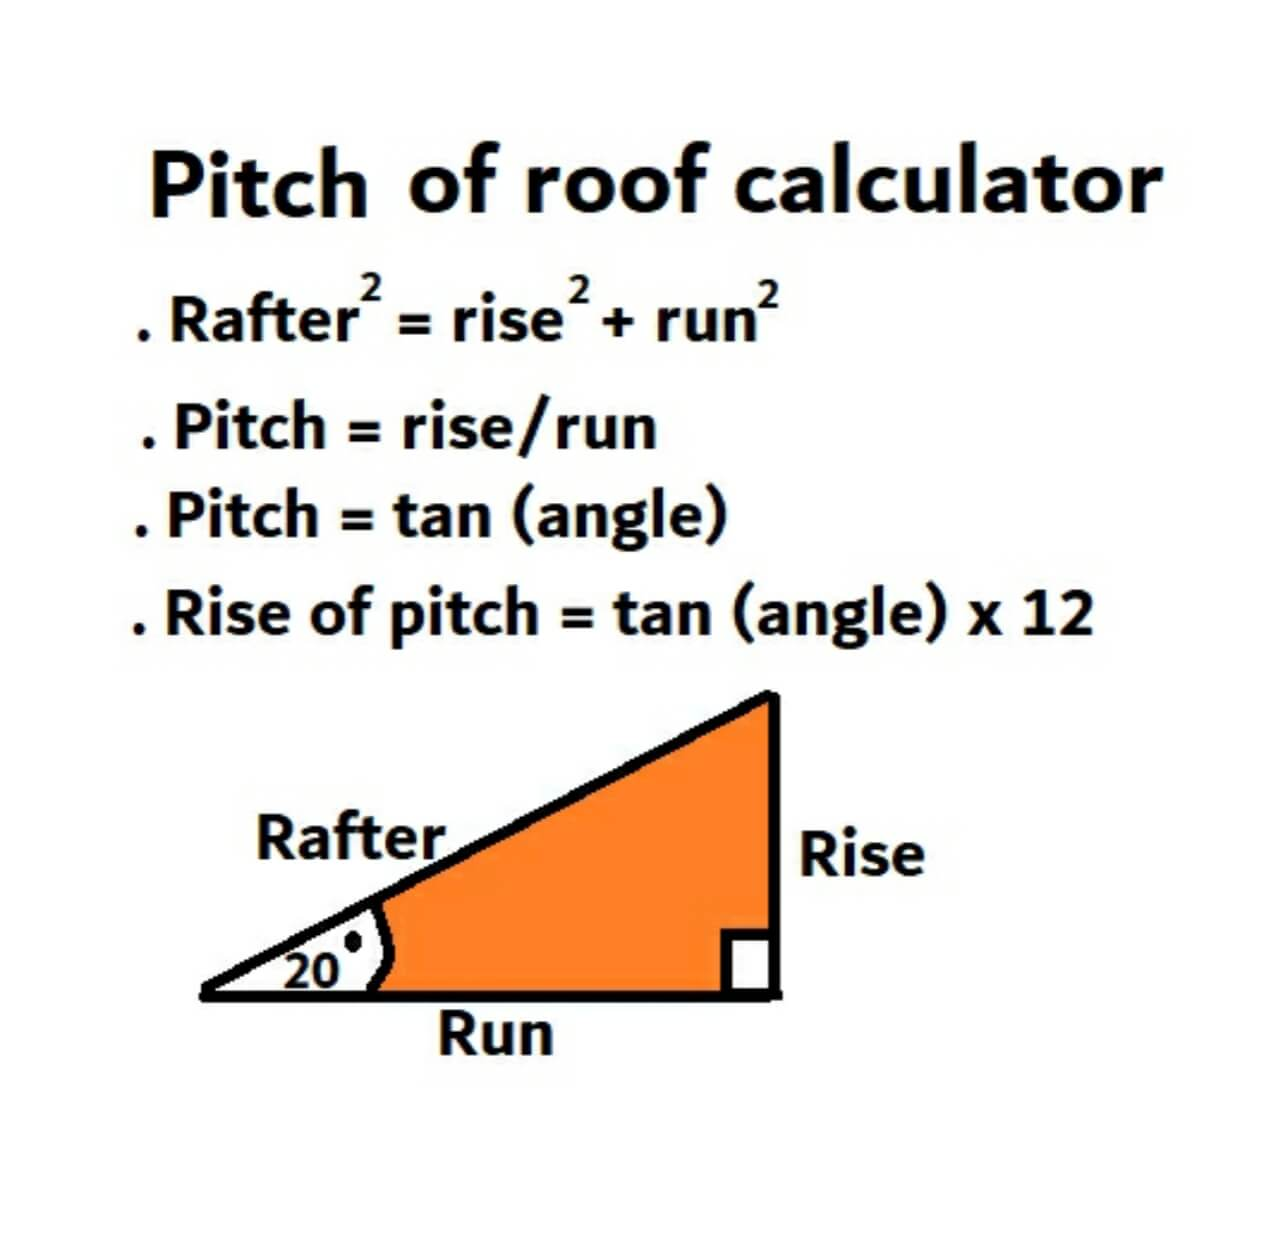 Pitch of roof calculator